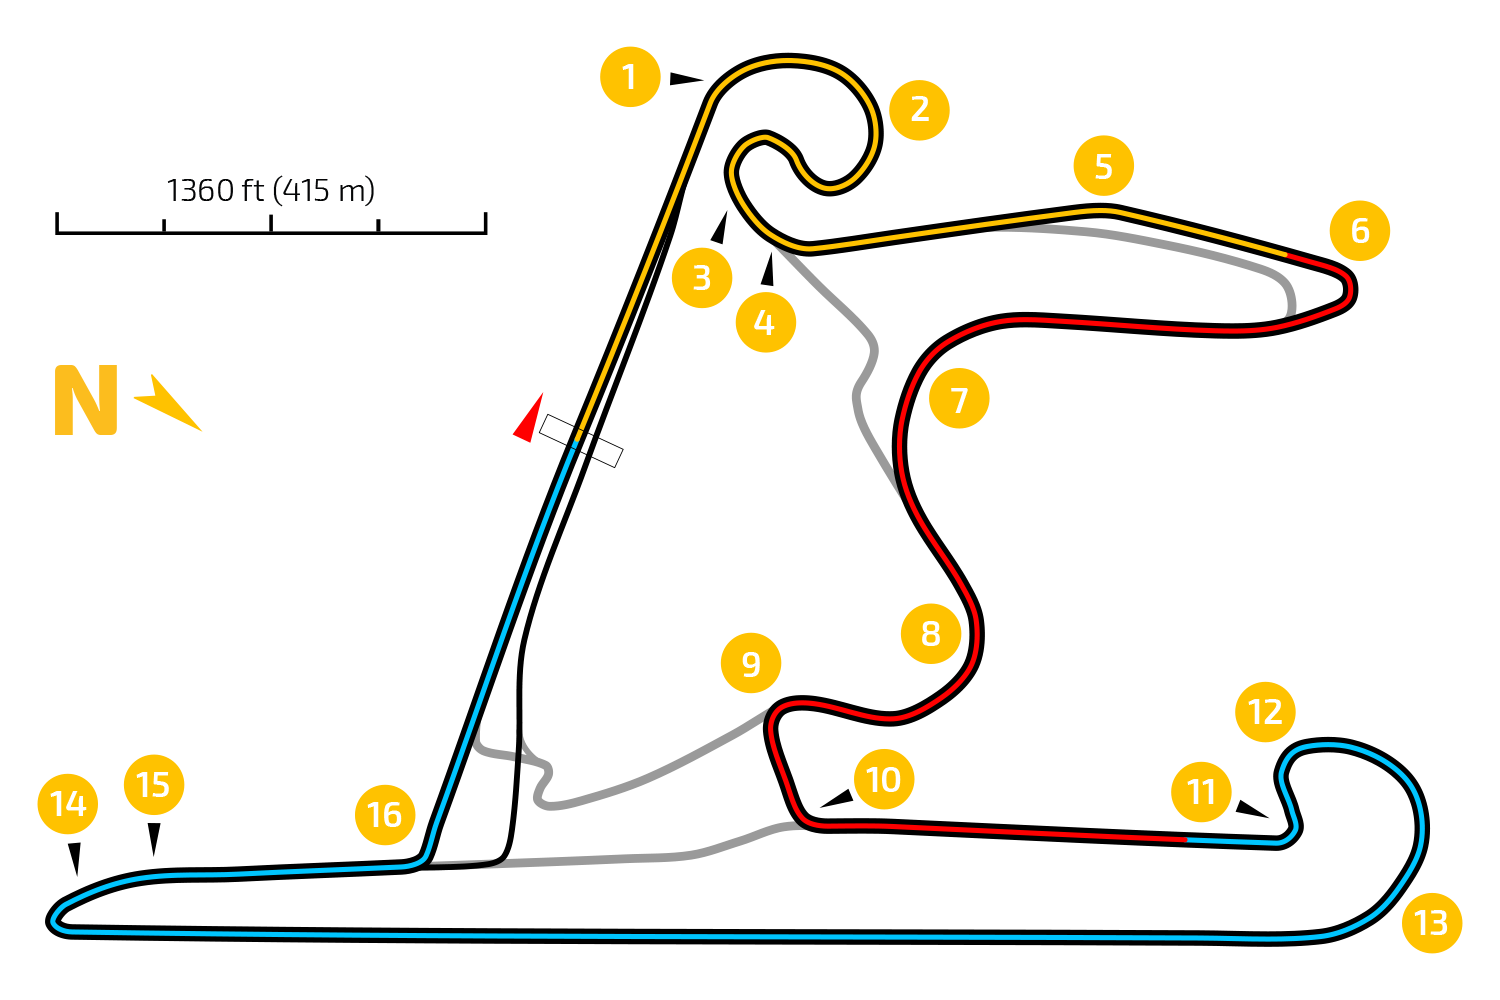 Shanghai International Circuit